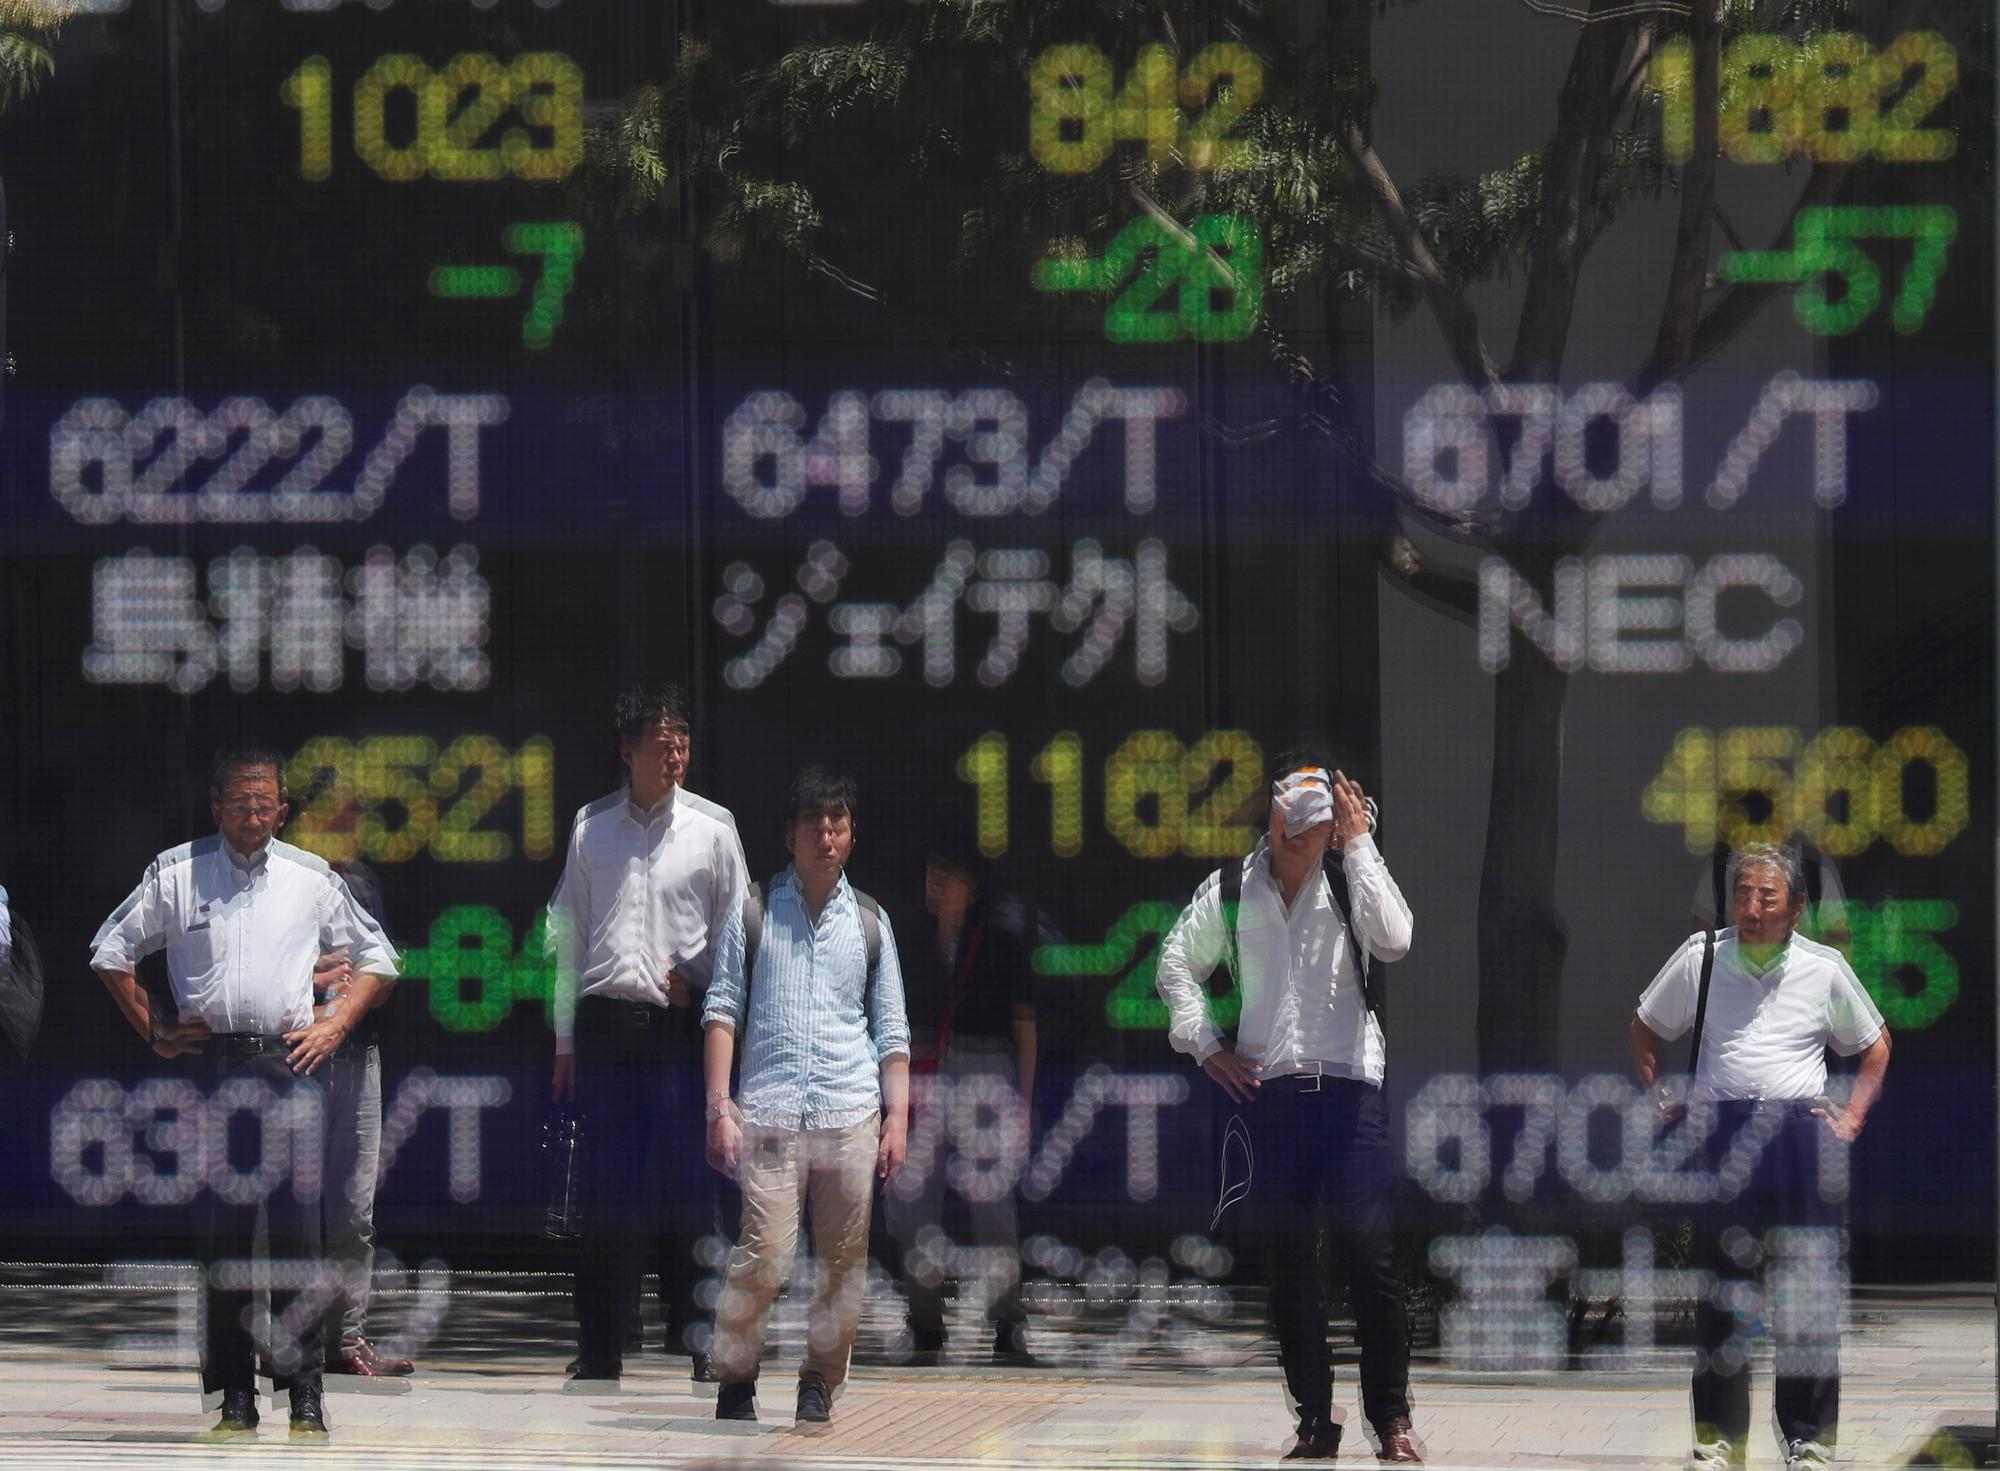 Stocks cheered by trade deal hopes but caution prevails